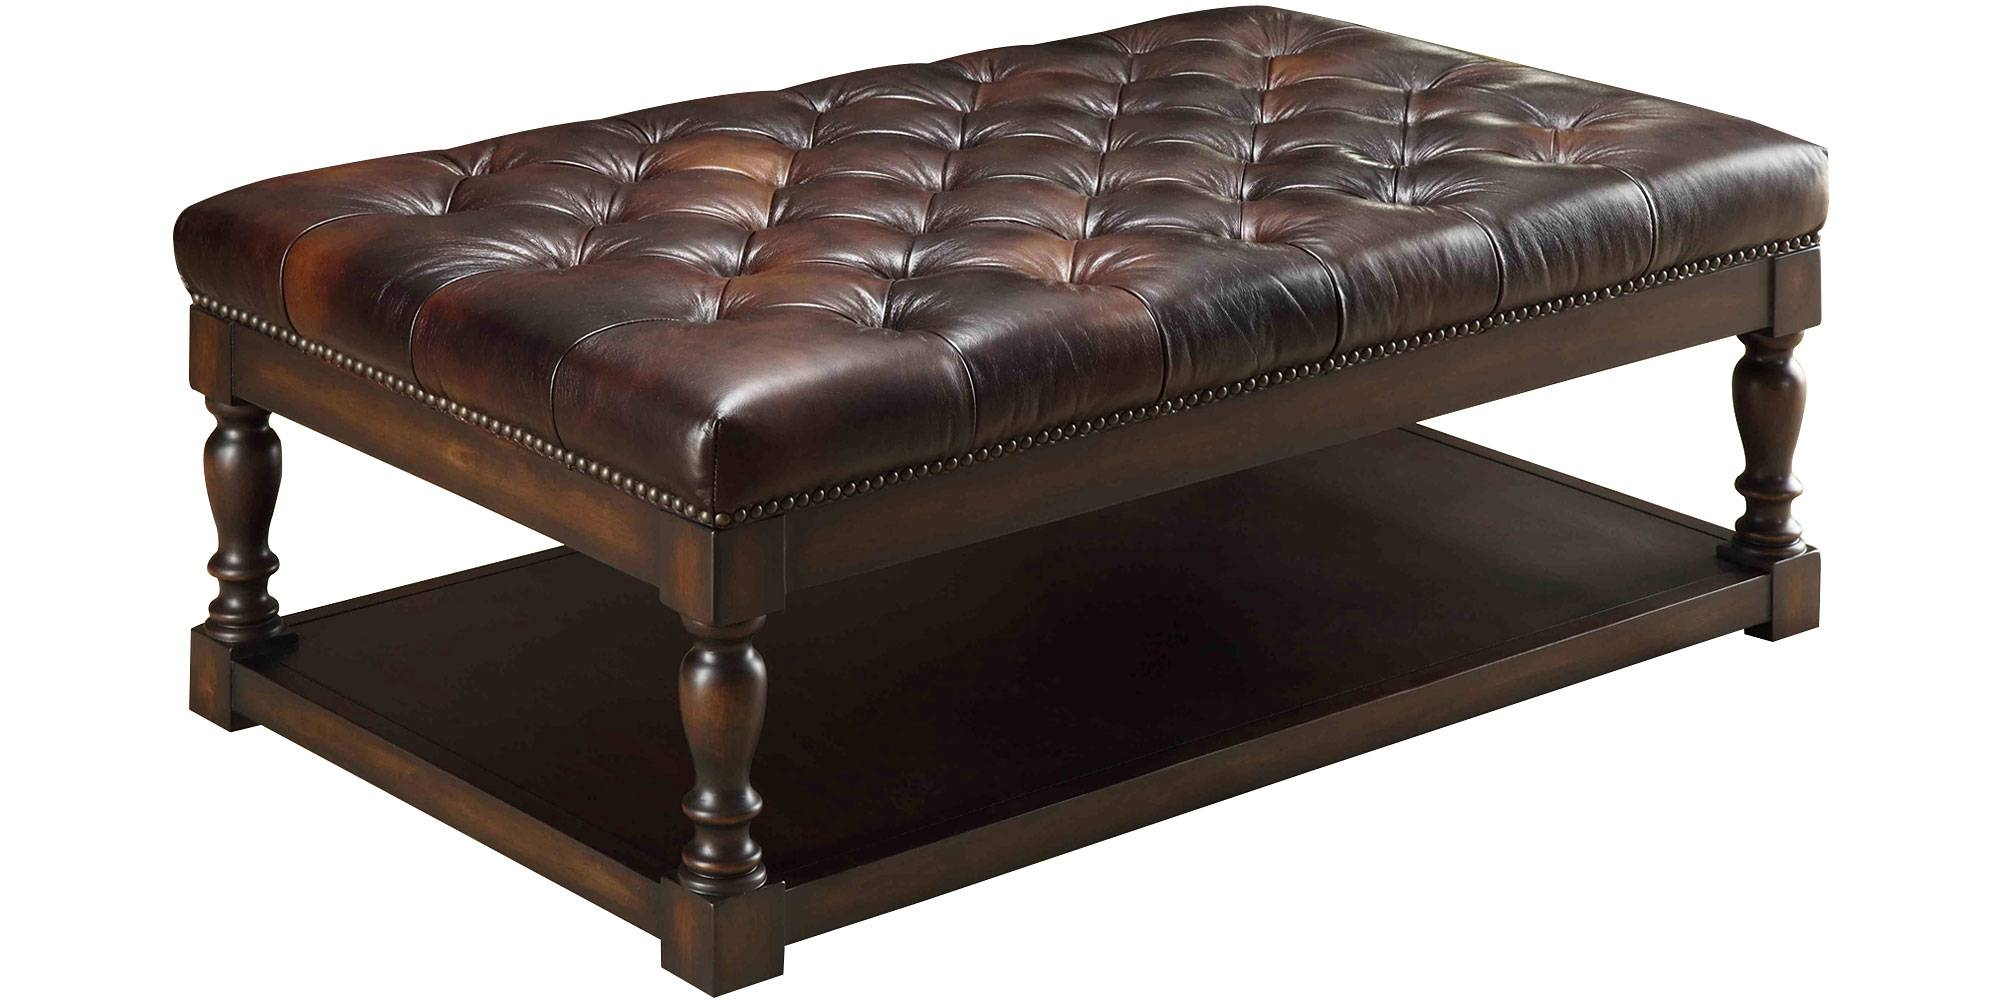 Tufted Ottoman Coffee Table ~ Home Decorations regarding Coffee Tables With Shelf Underneath (Image 29 of 30)